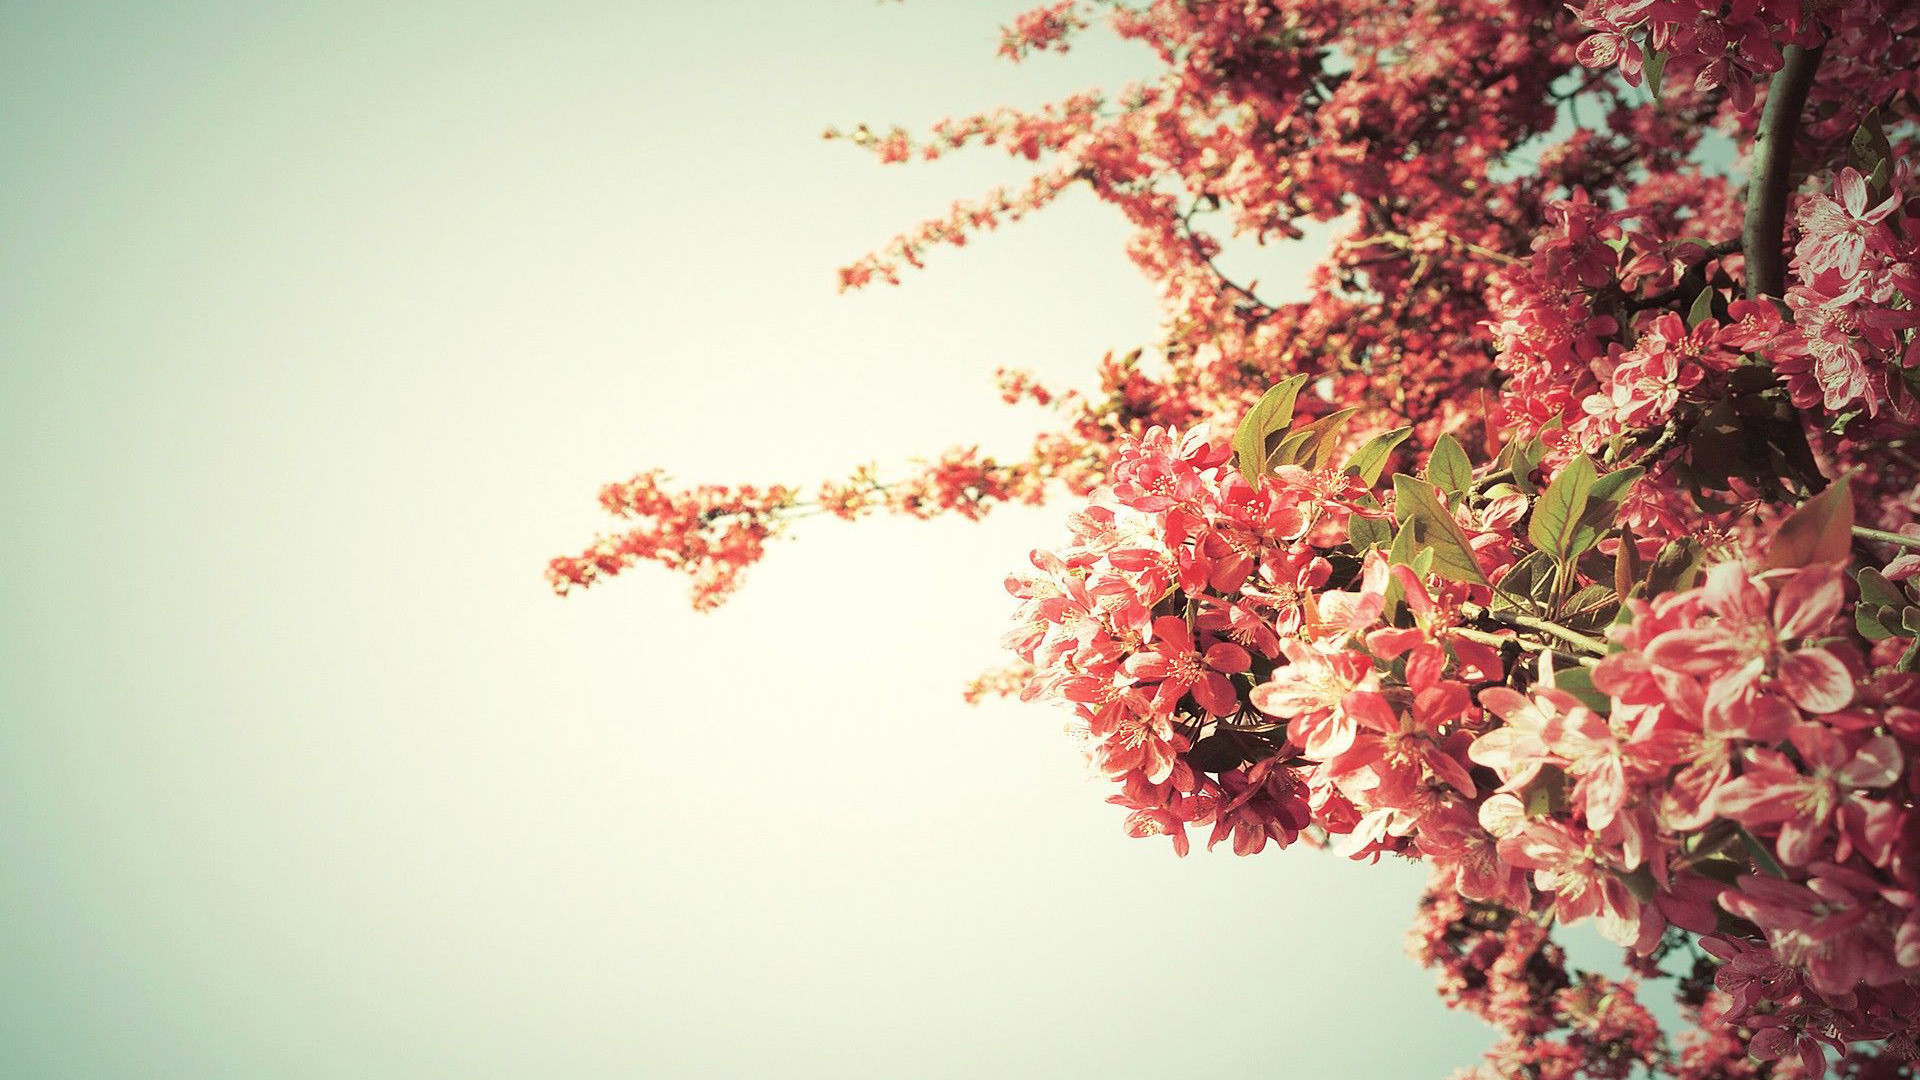 Res: 1920x1080, Spring tree blossoms HD Spring tree blossoms Wallpaper #